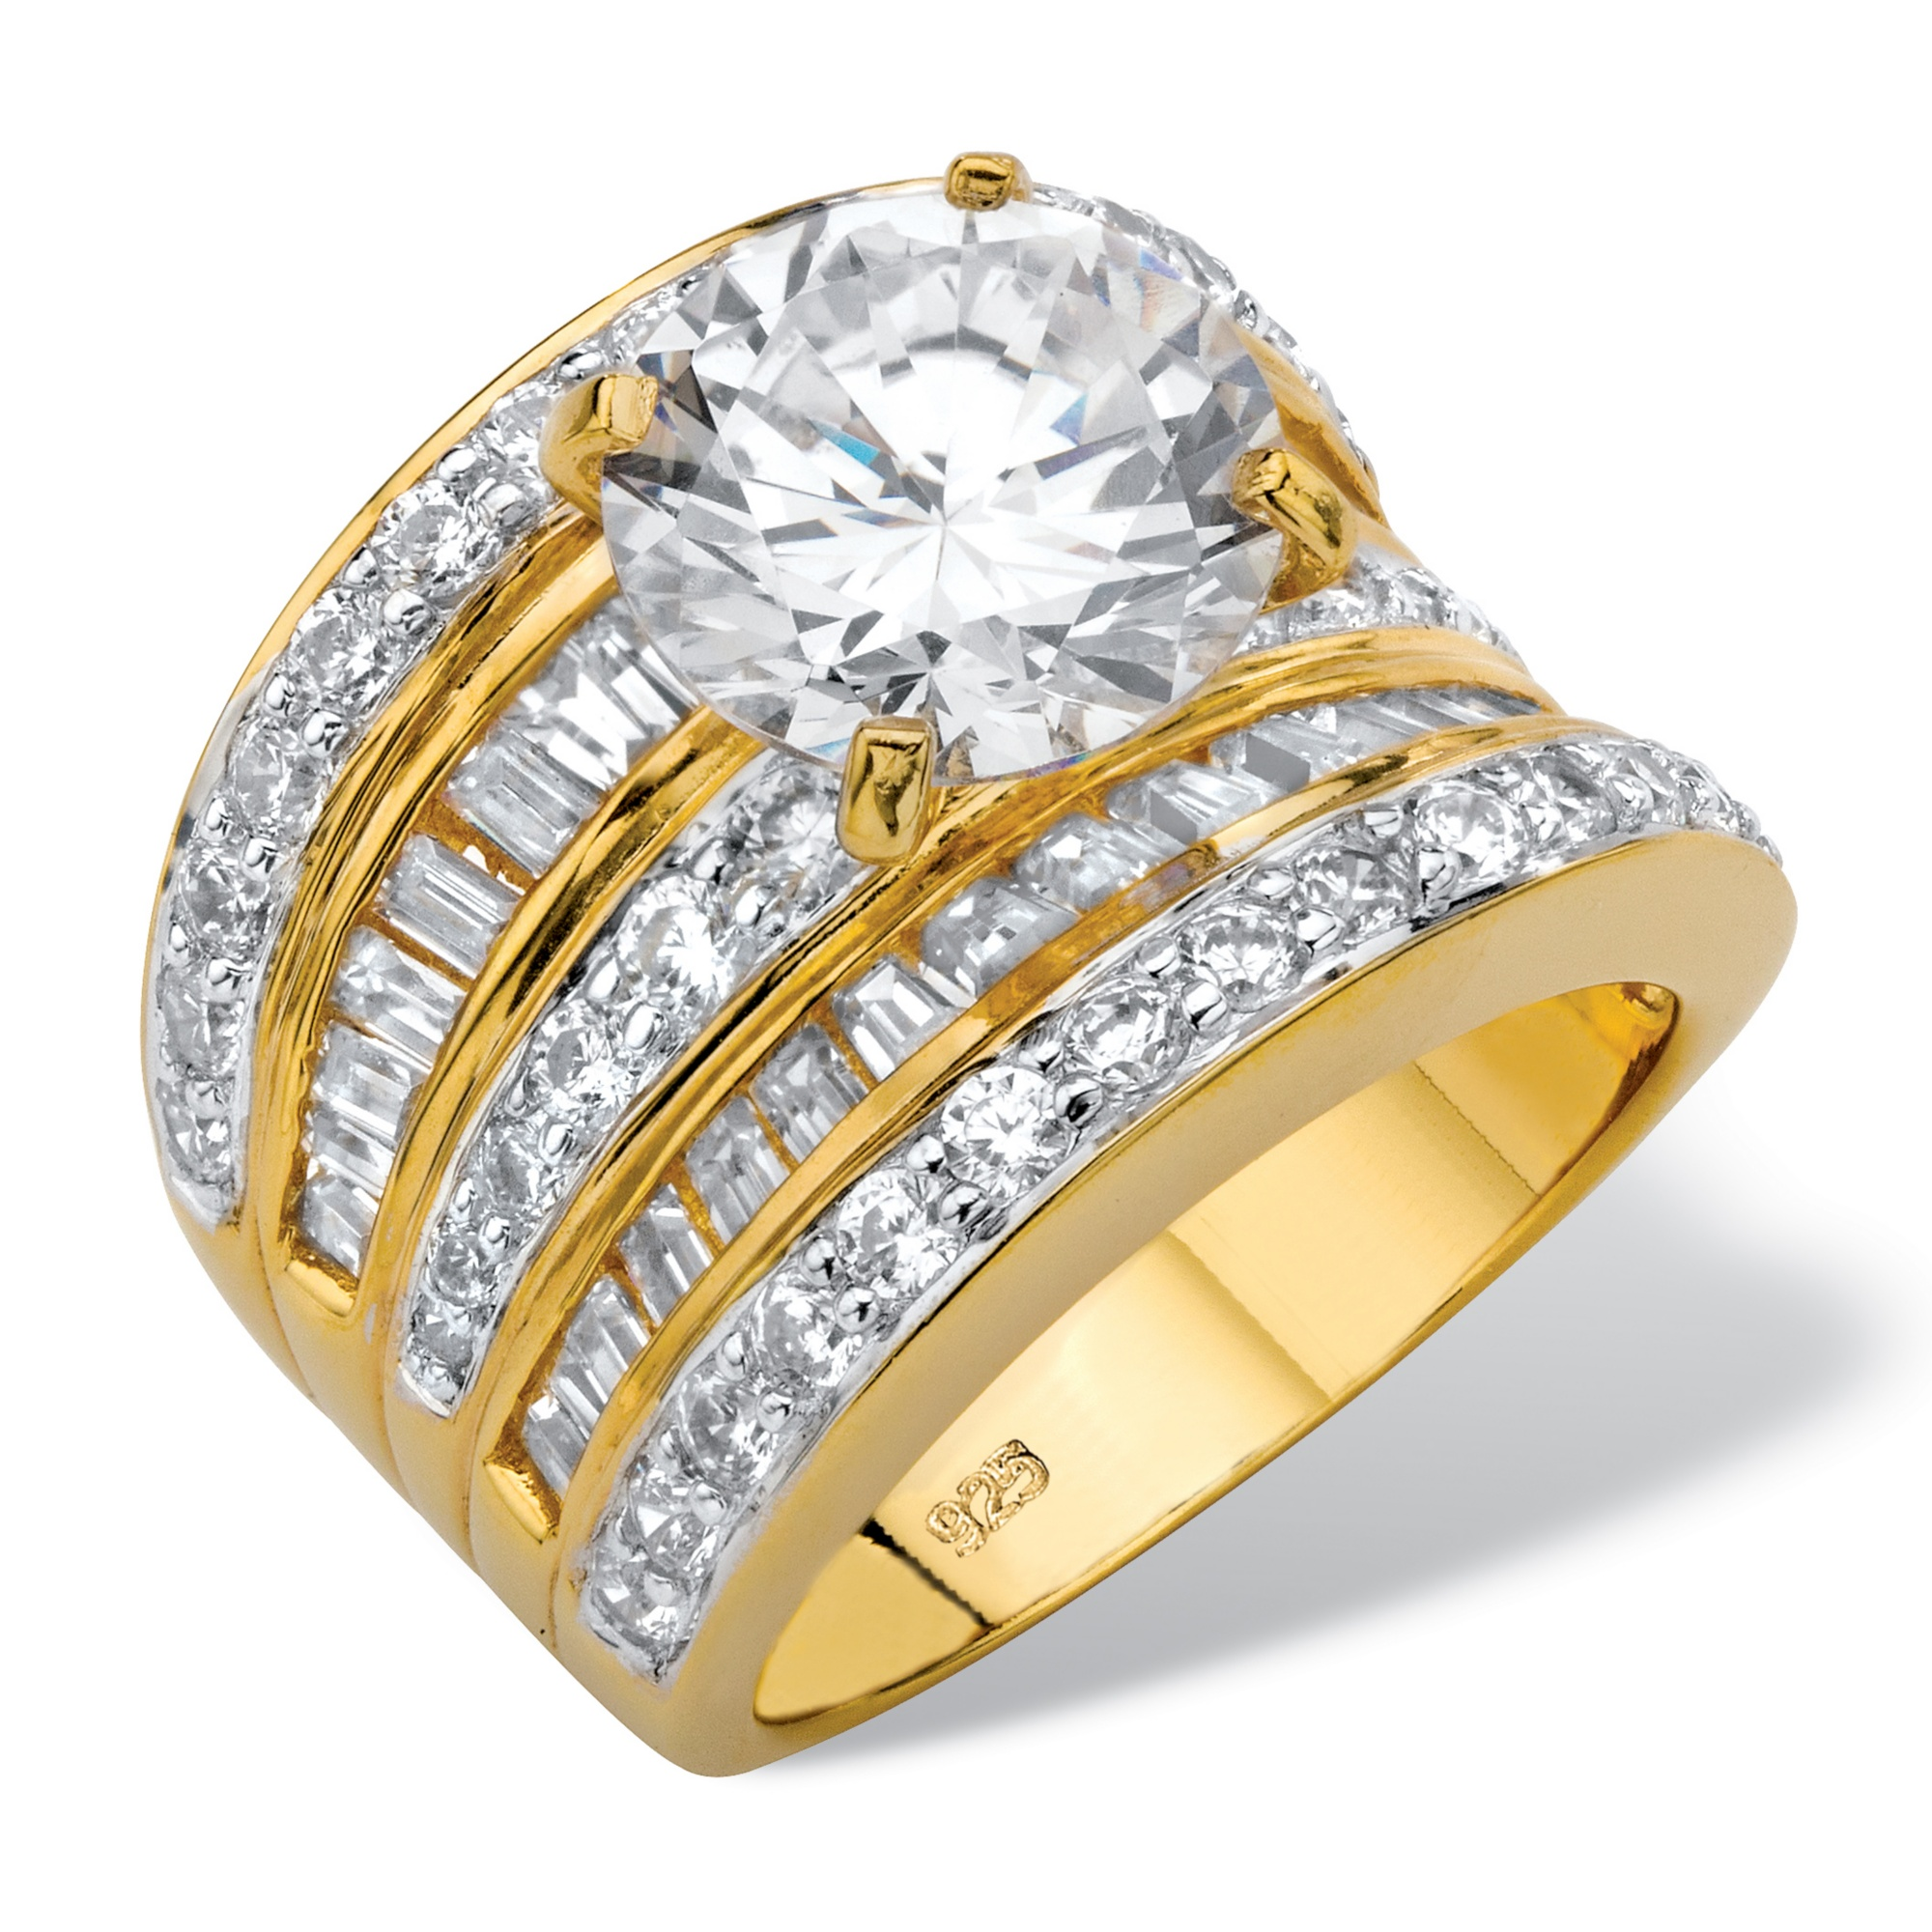 7.14 TCW Round Cubic Zirconia Multi-Row Scoop Engagement Ring in 14k Gold over Sterling Silver